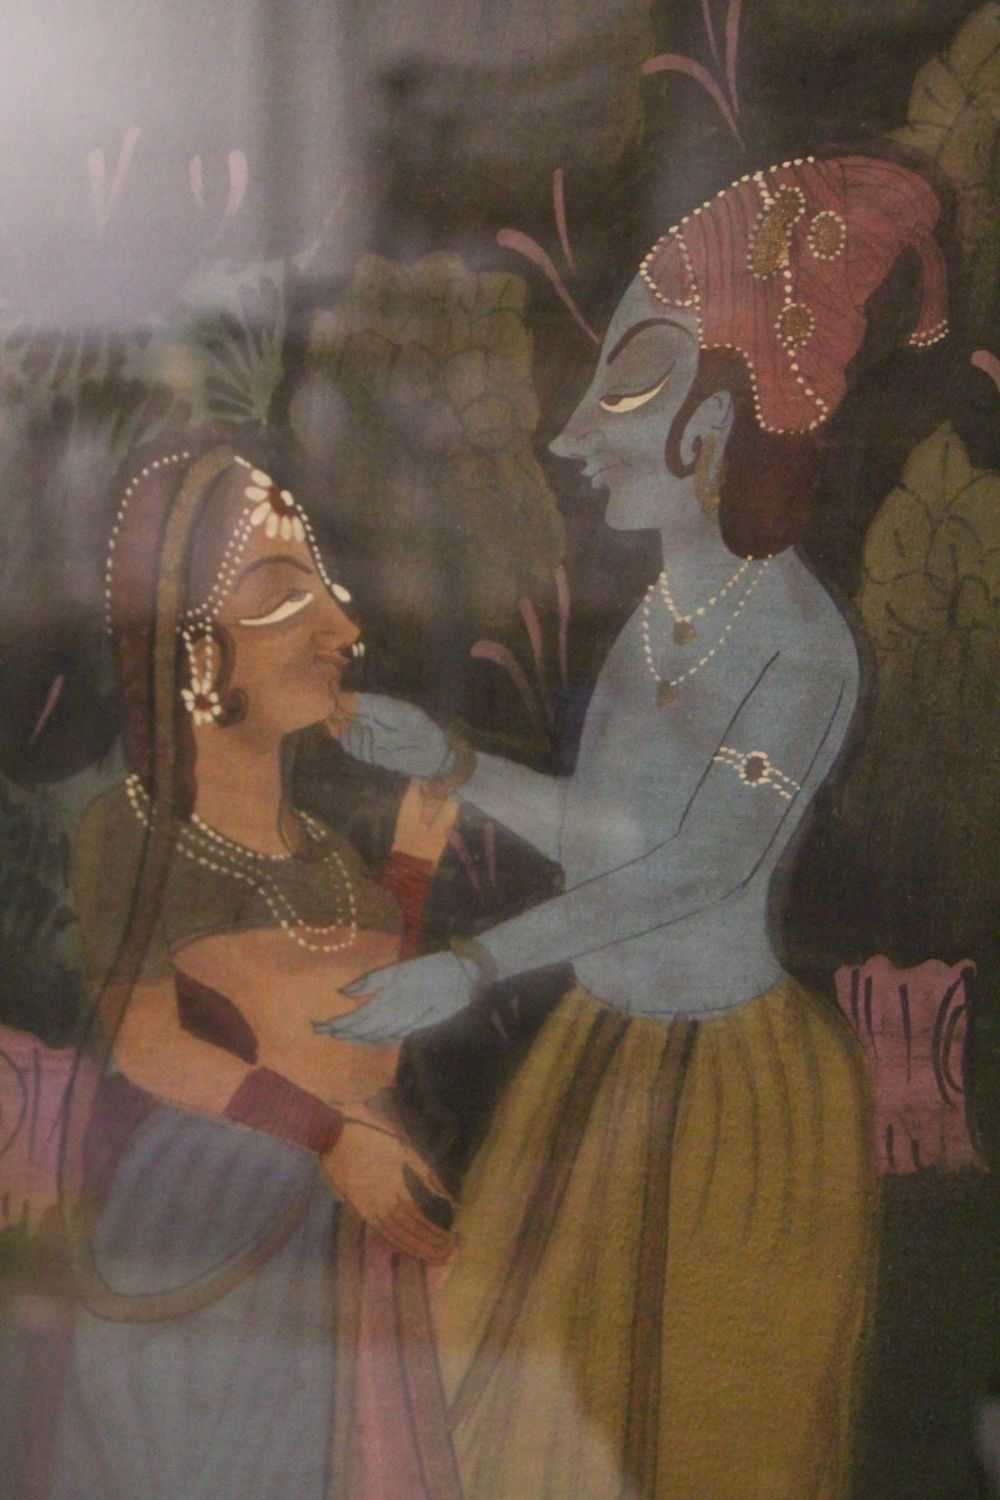 Lot 44 - A 19TH-20TH CENTURY FRAMED INDIAN PAINTING ON TEXTILE depicting a blue skin god dancing with a